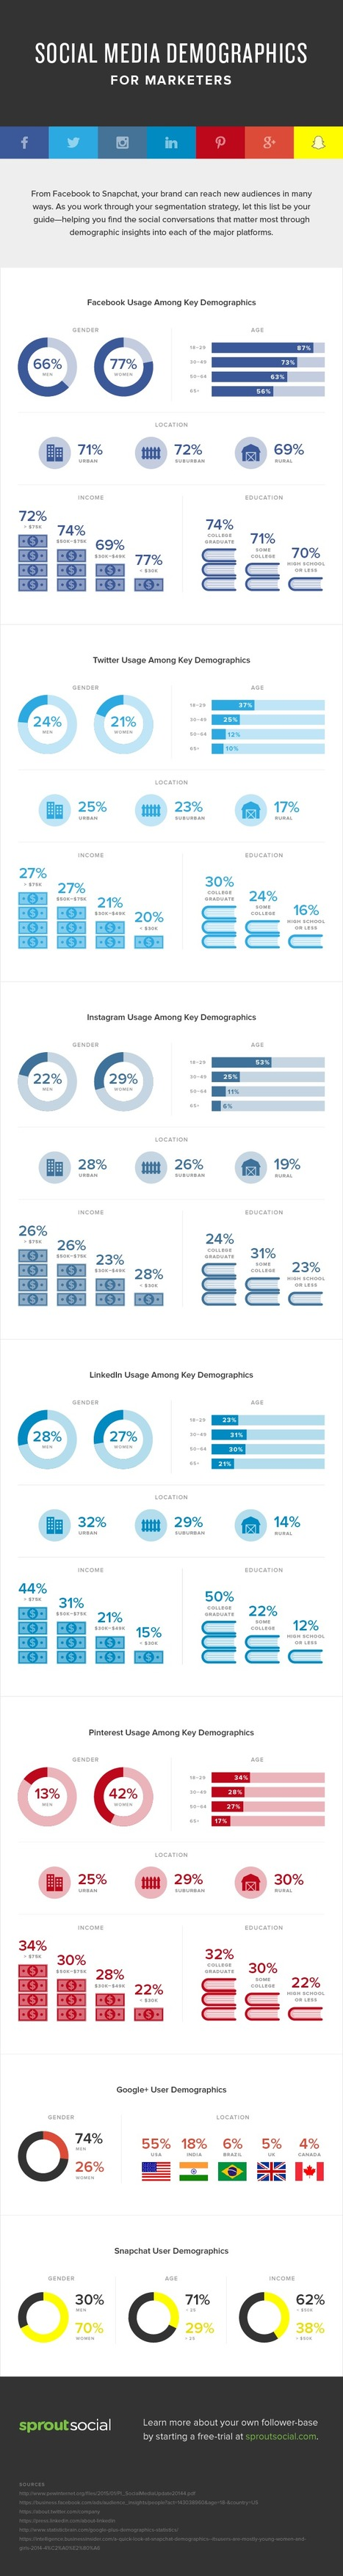 Who is On Facebook, LinkedIn, Pinterest, Snapchat and Other Networks? [Infographic] | Consumer Behavior in Digital Environments | Scoop.it